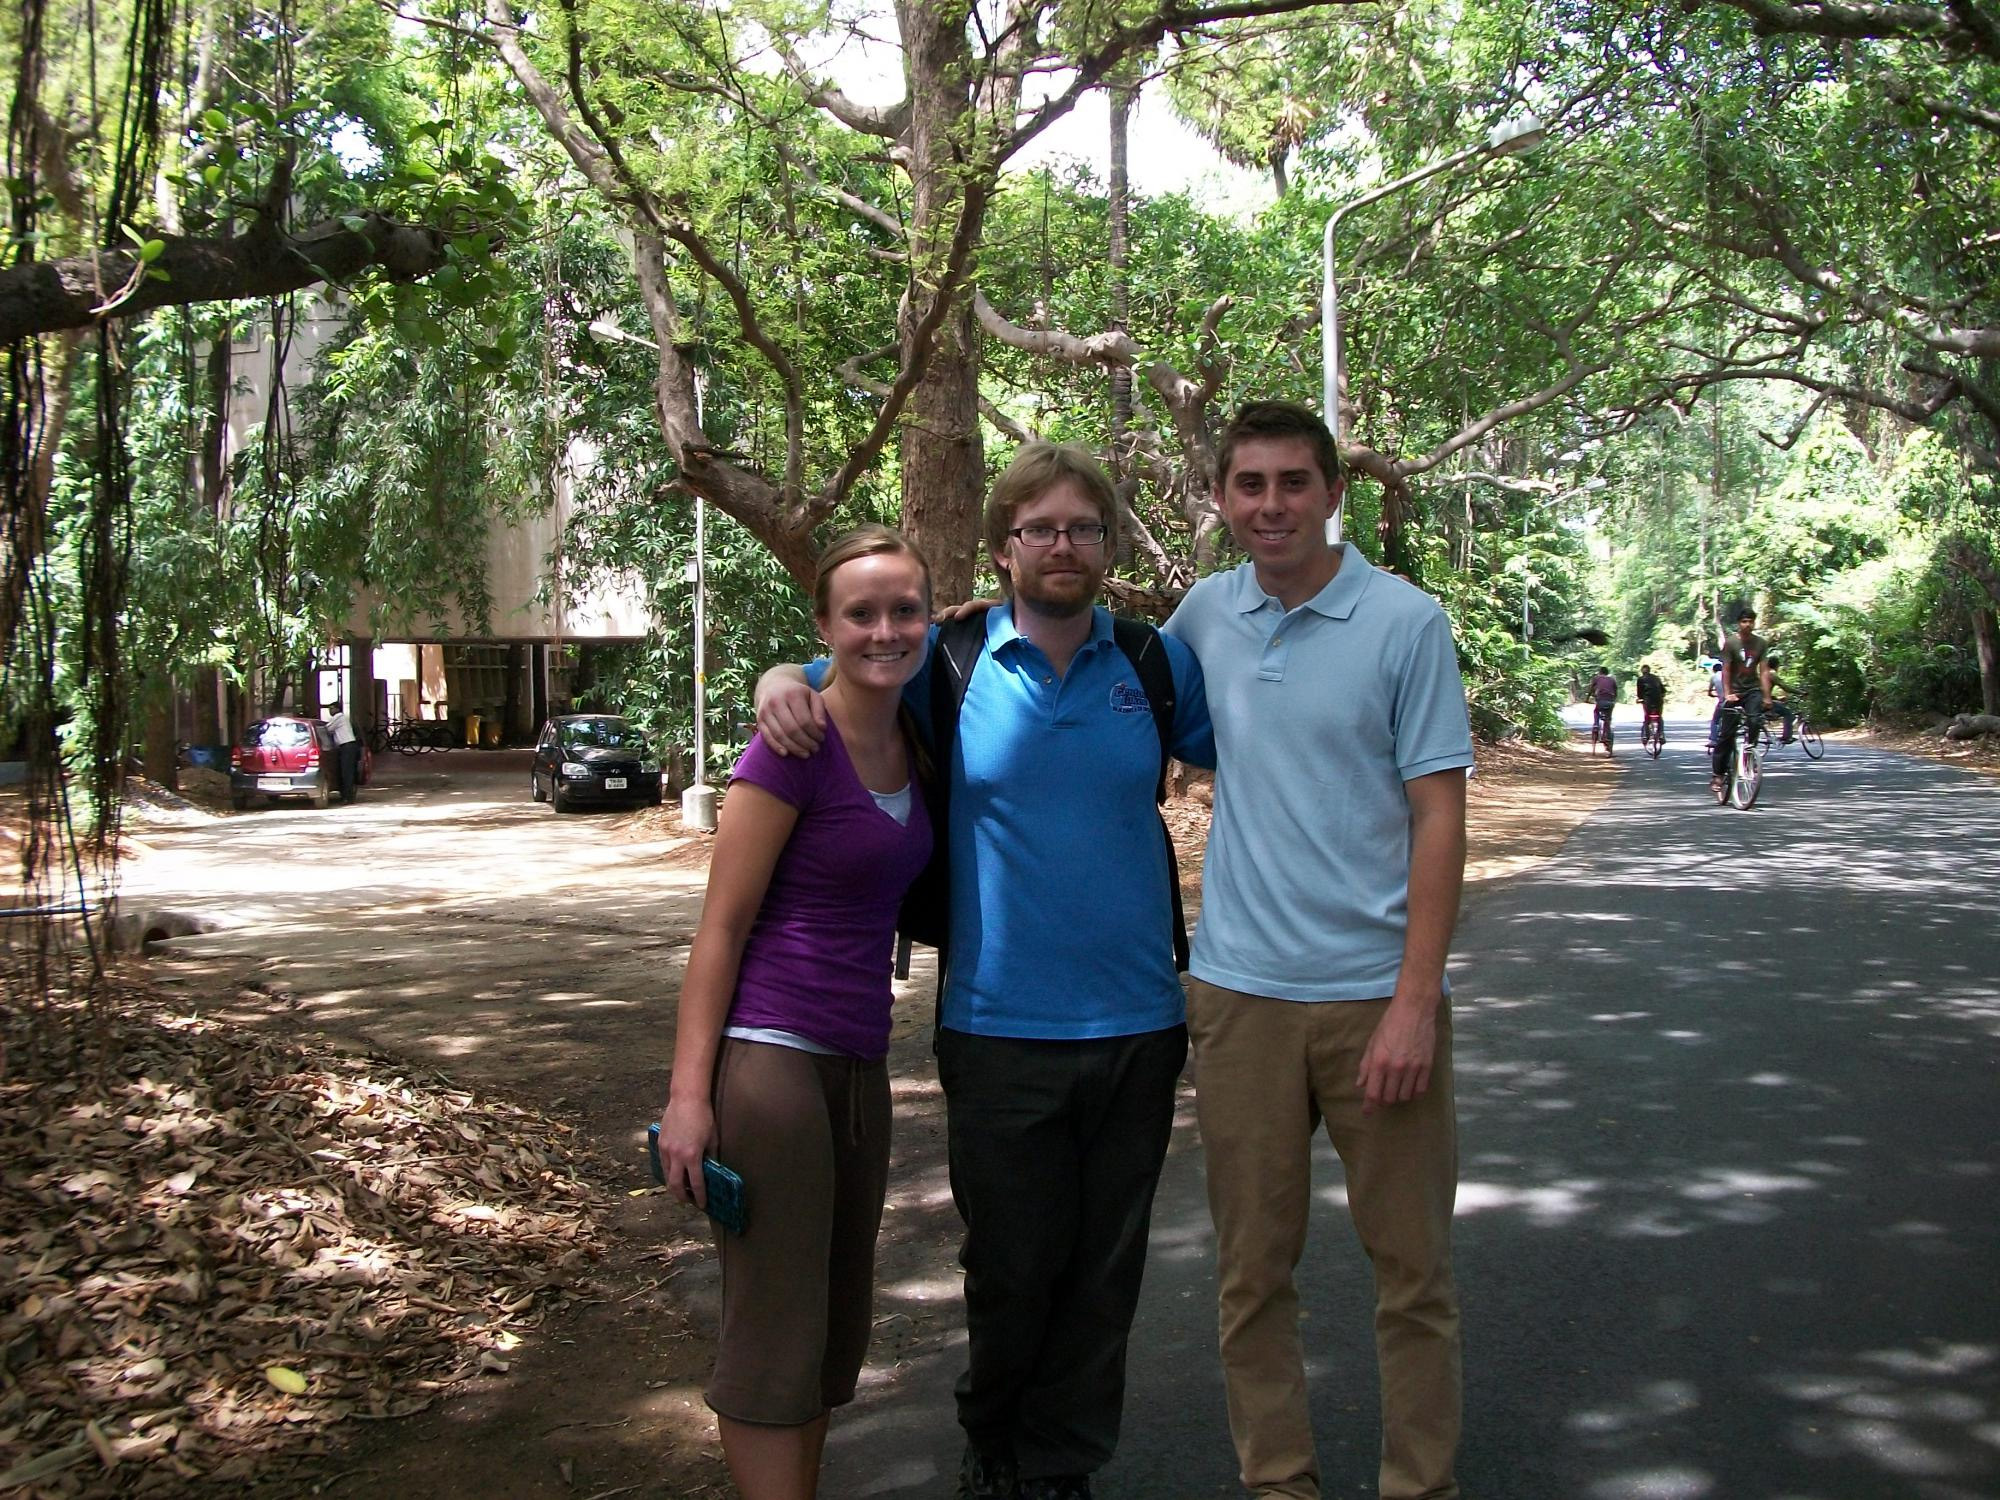 Cori, Eric and Jake at ITTs campus in Chennai, India